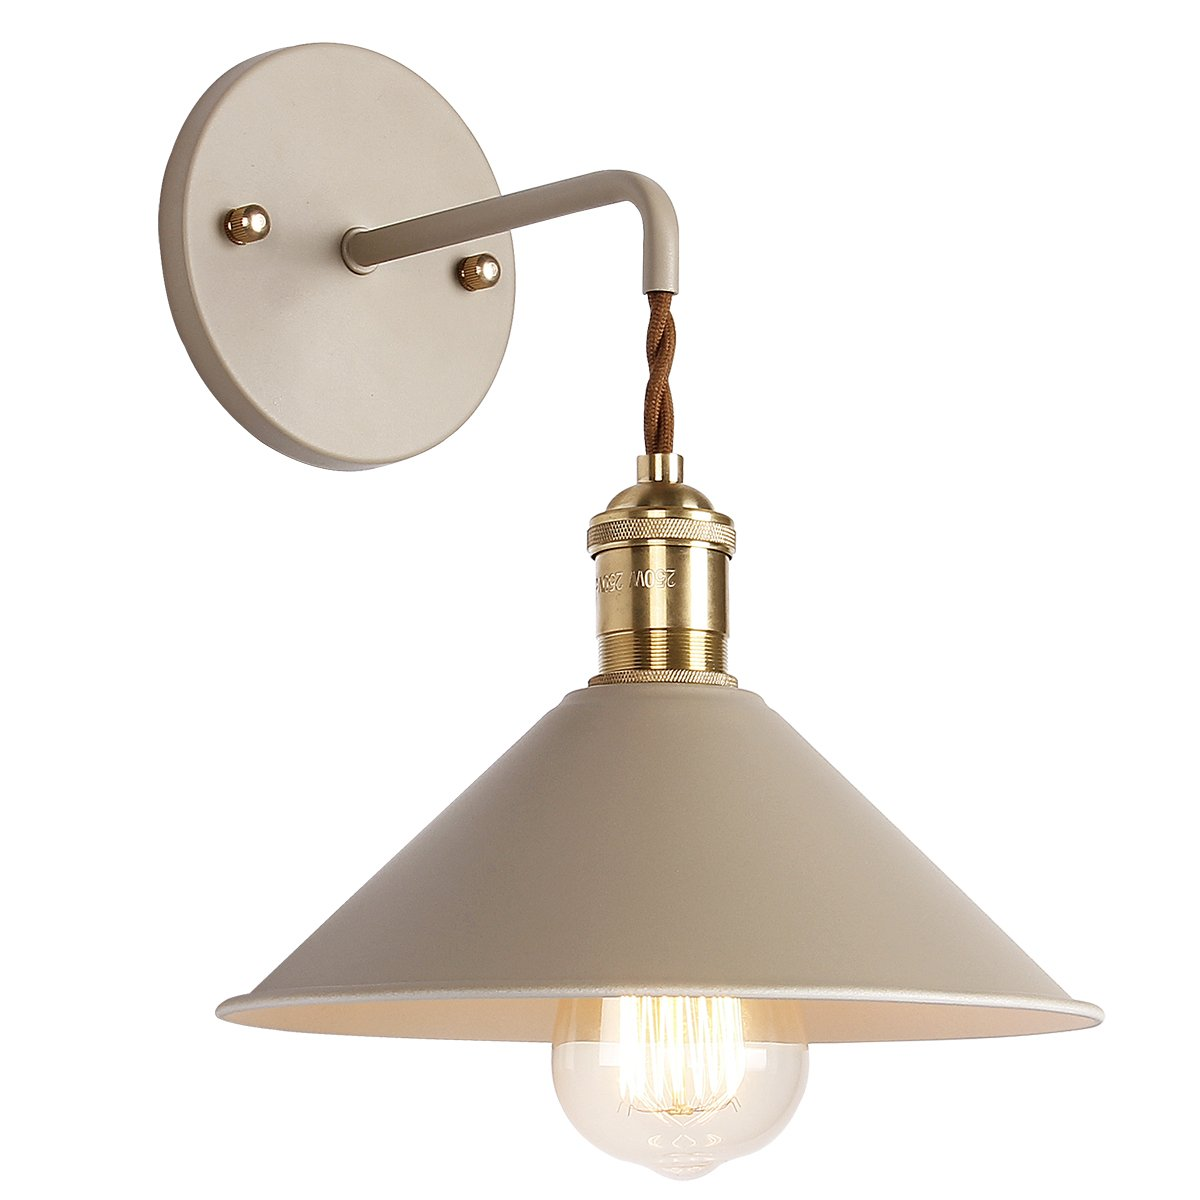 This is the iYoee Sconce Lamp from Amazon.